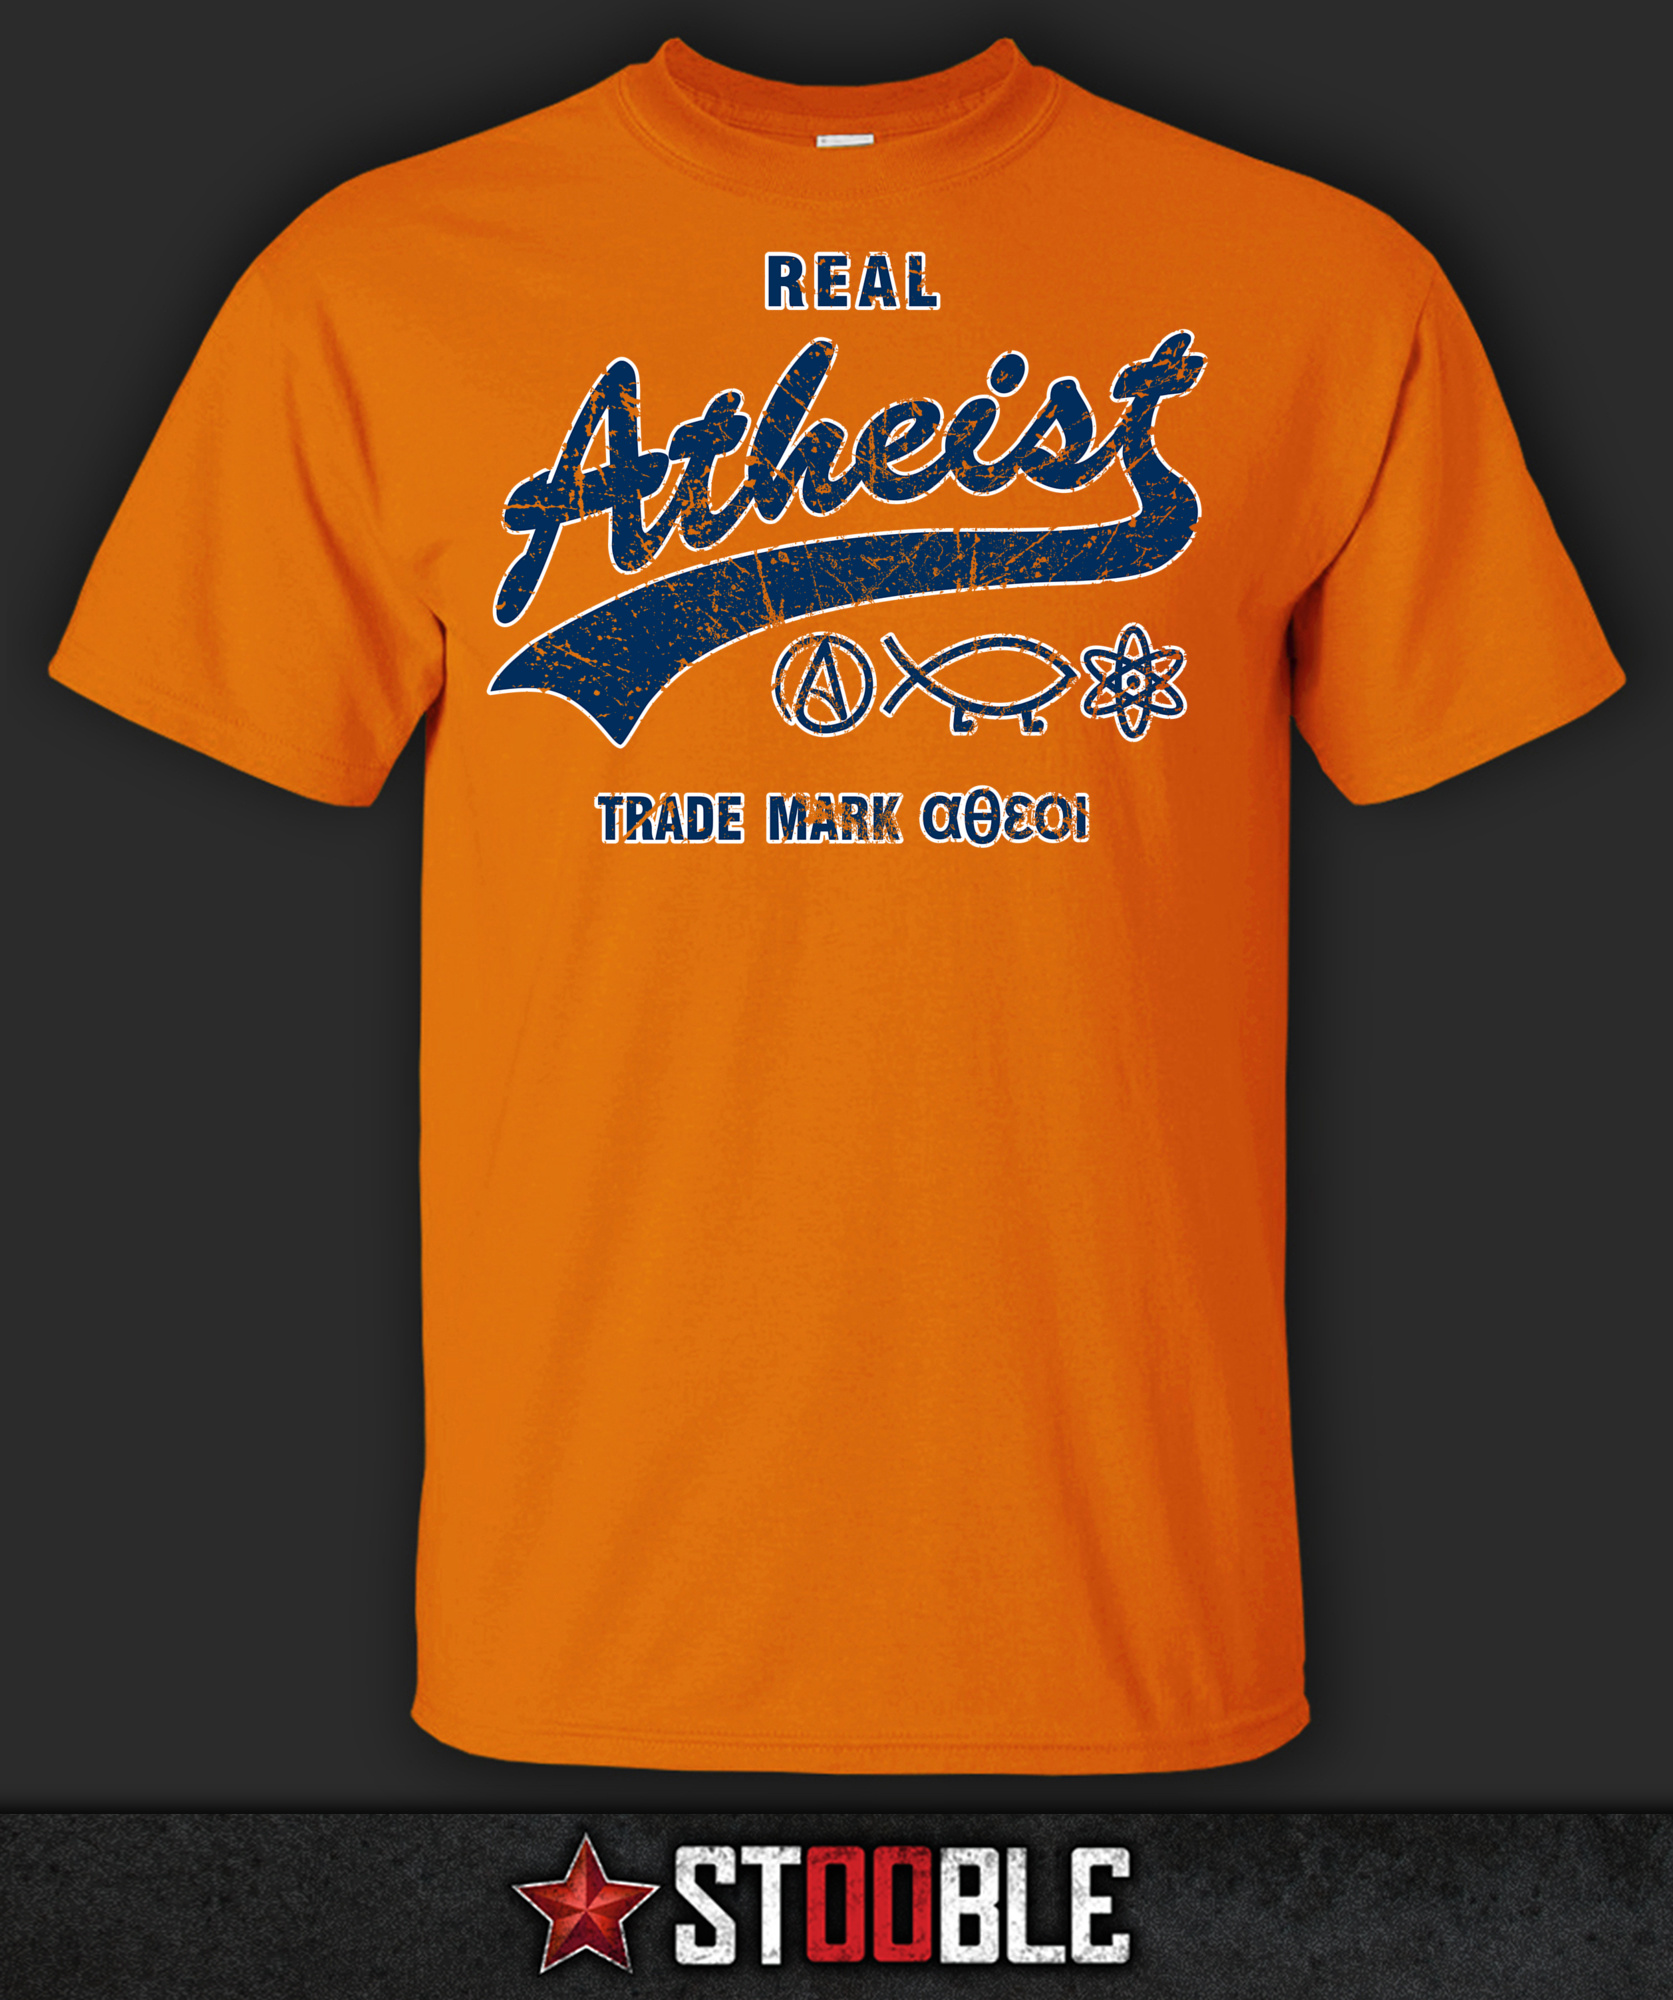 Real Atheist T-Shirt - New - Direct from Manufacturer